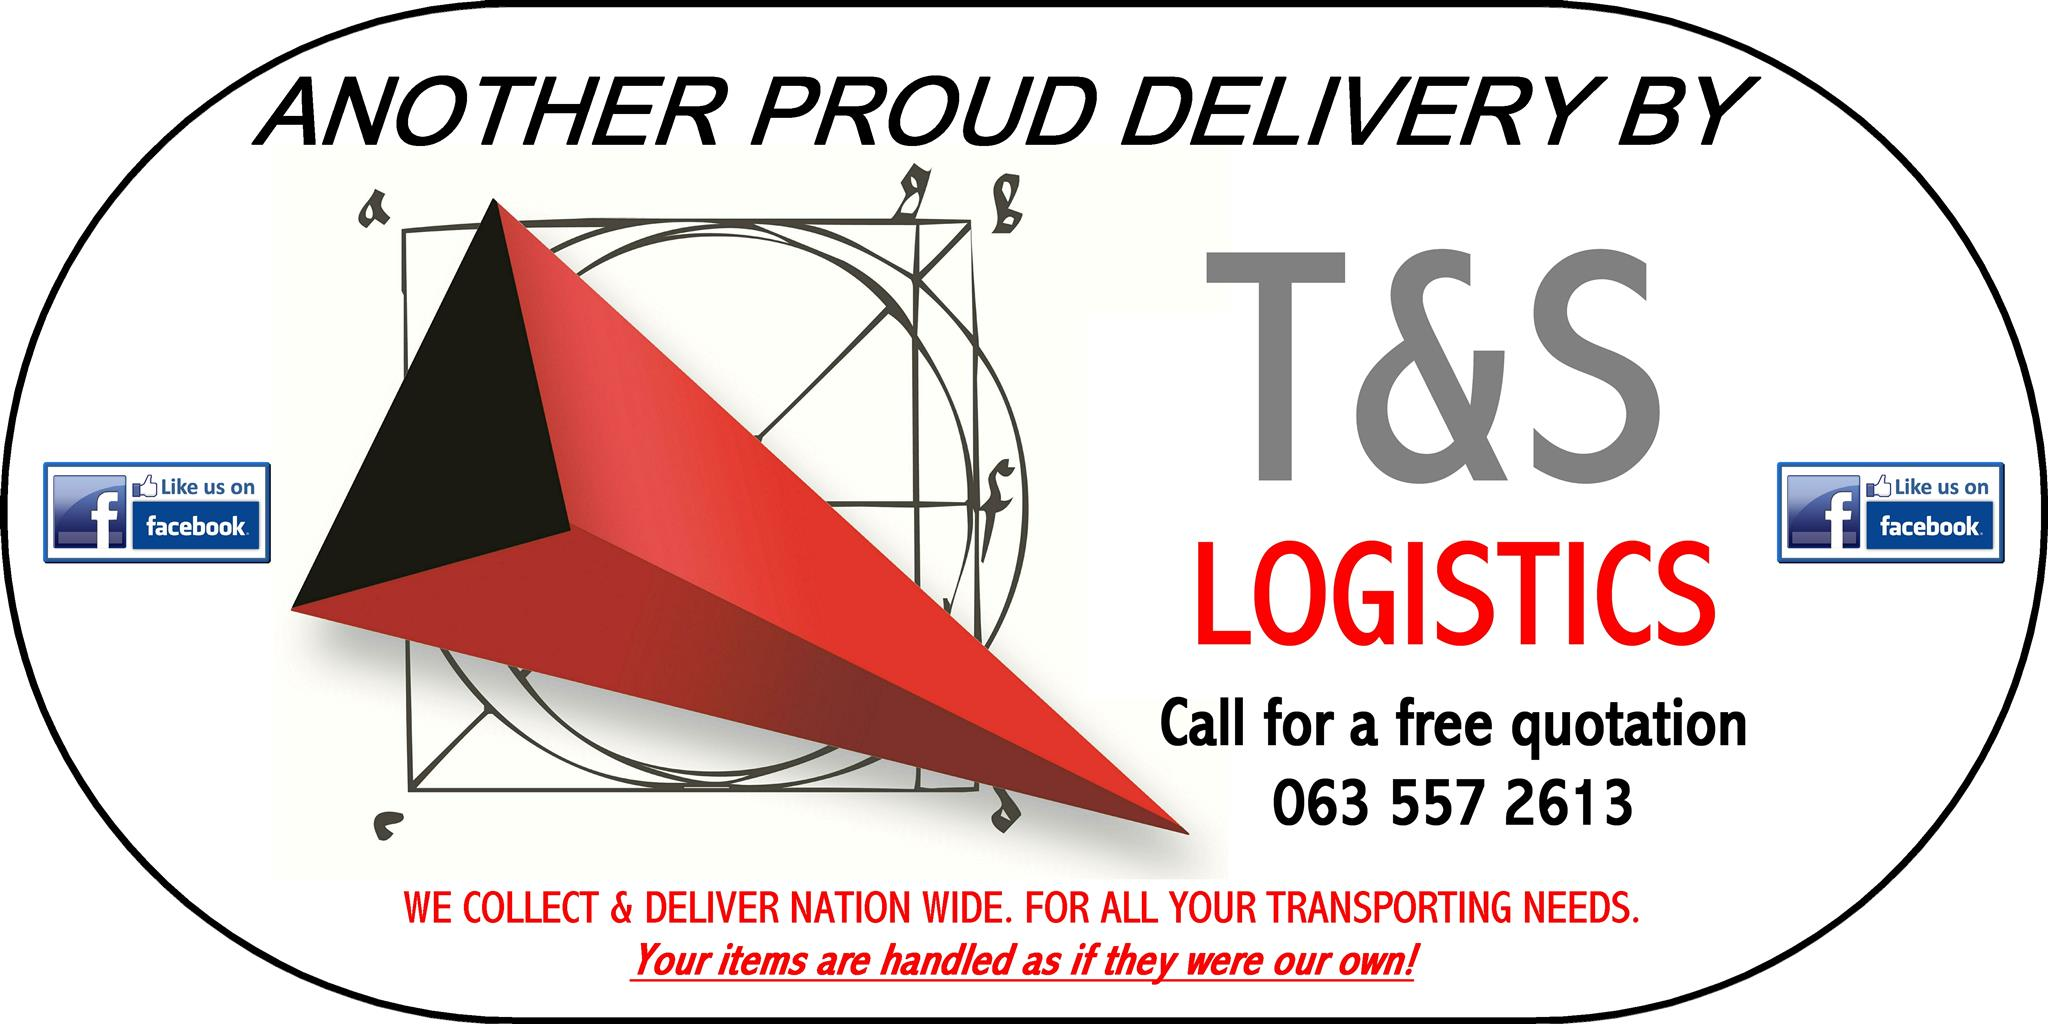 T&S LOGISTICS, COLLECTION & DELIVERY FROM JOHANNESBURG TO NATIONWIDE, FURNITURE REMOVALS, IF IT FITS WE CAN CARRY!!